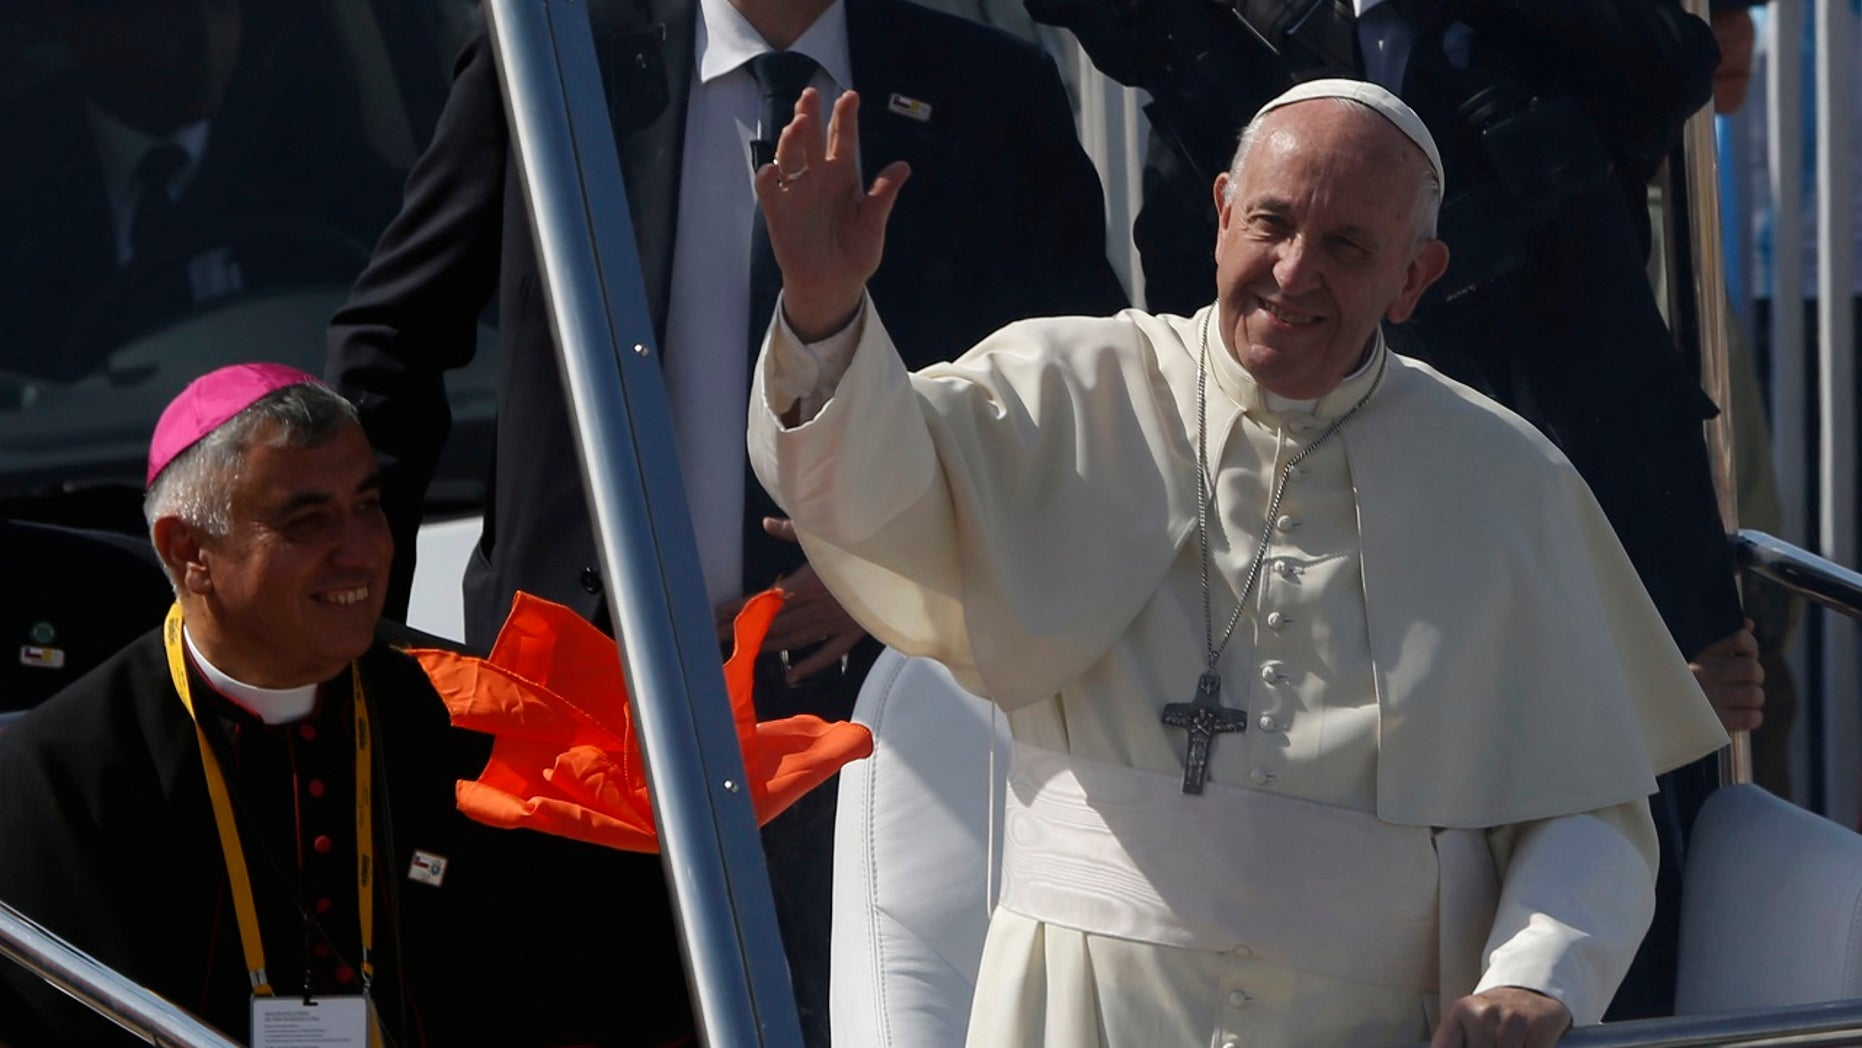 Pope Francis celebrating Mass in Iquique, Chile, on Thursday.